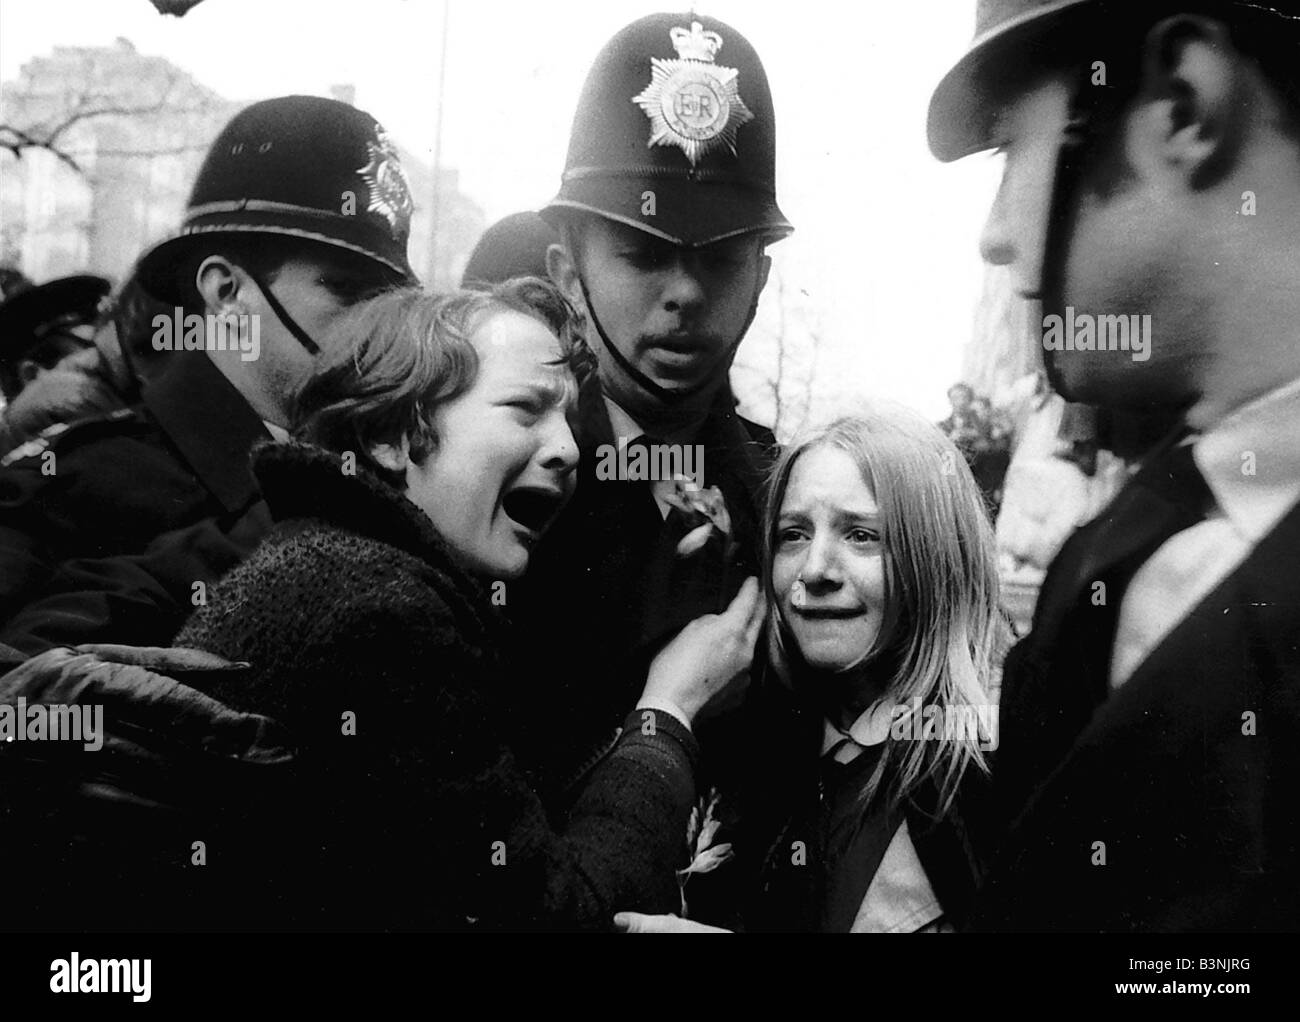 Upset Beatles fans crying because Paul McCartney got married are led away by police March 1969 Stock Photo